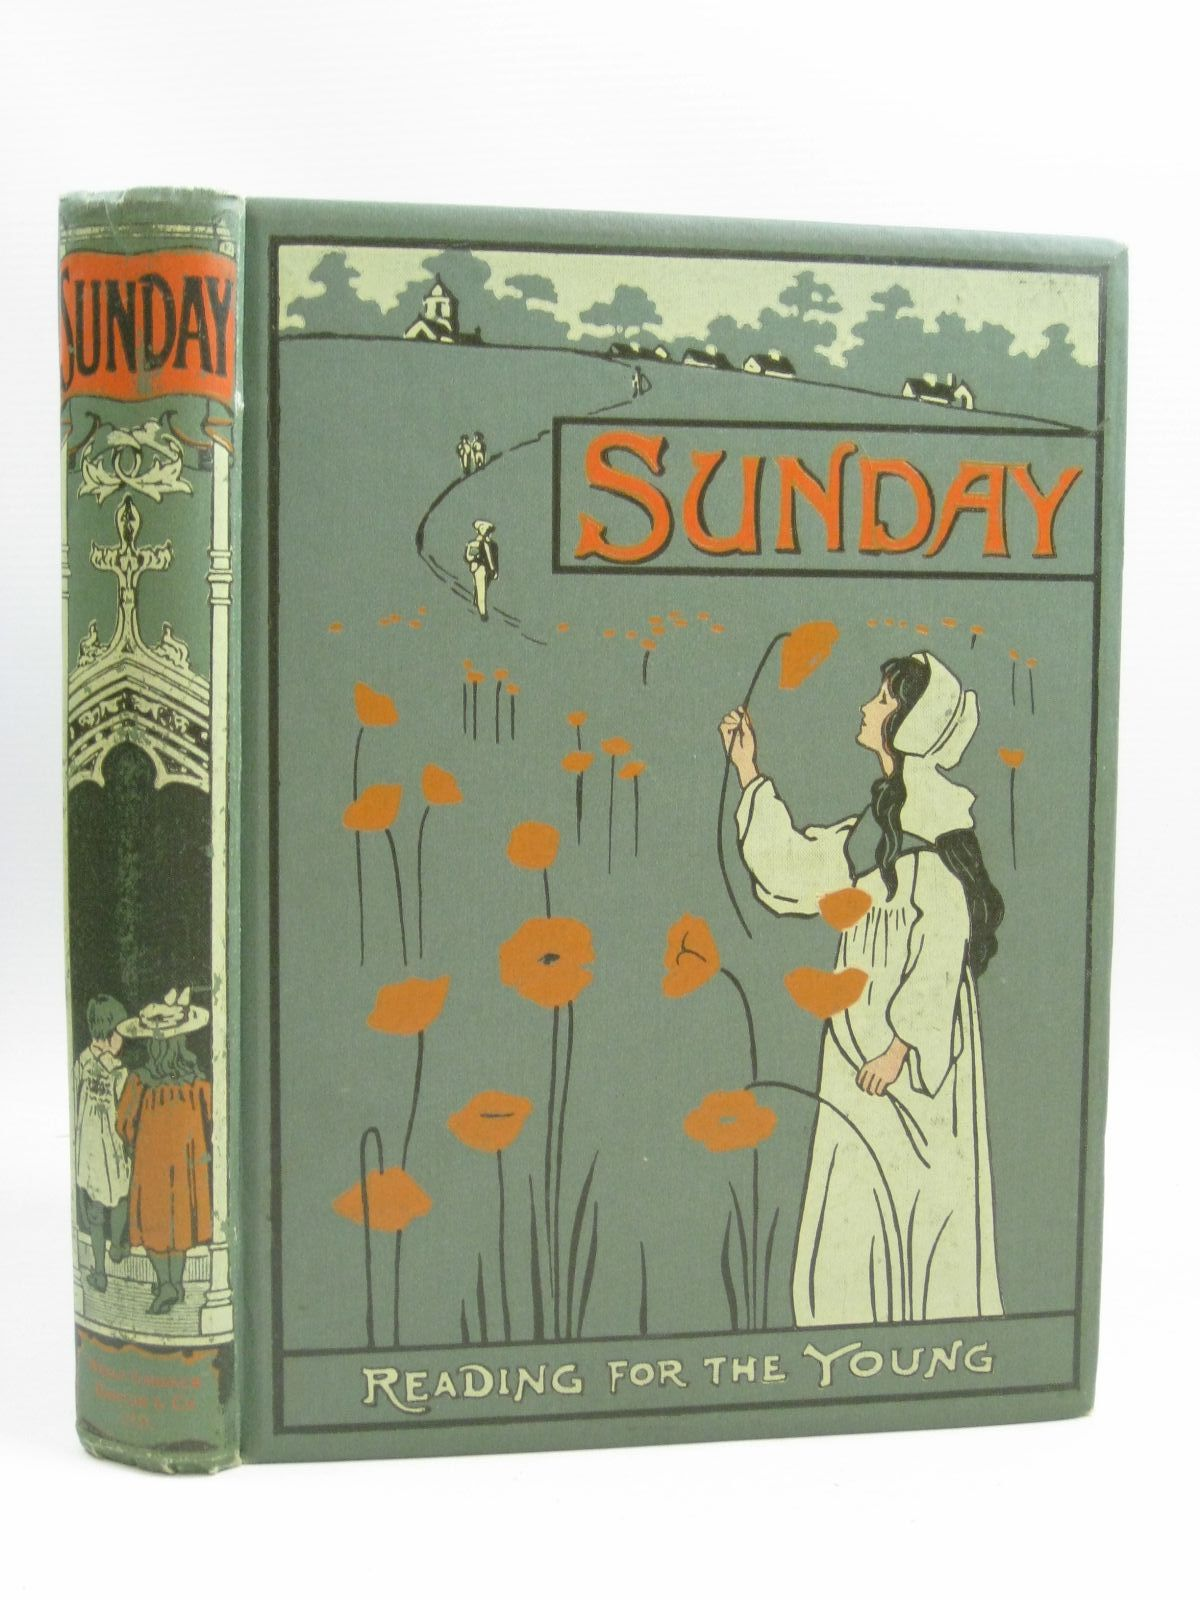 Photo of SUNDAY READING FOR THE YOUNG 1906 written by Marchant, Bessie et al, illustrated by Browne, Gordon Bedford, Francis D. et al., published by Wells Gardner, Darton & Co. Ltd. (STOCK CODE: 1315245)  for sale by Stella & Rose's Books